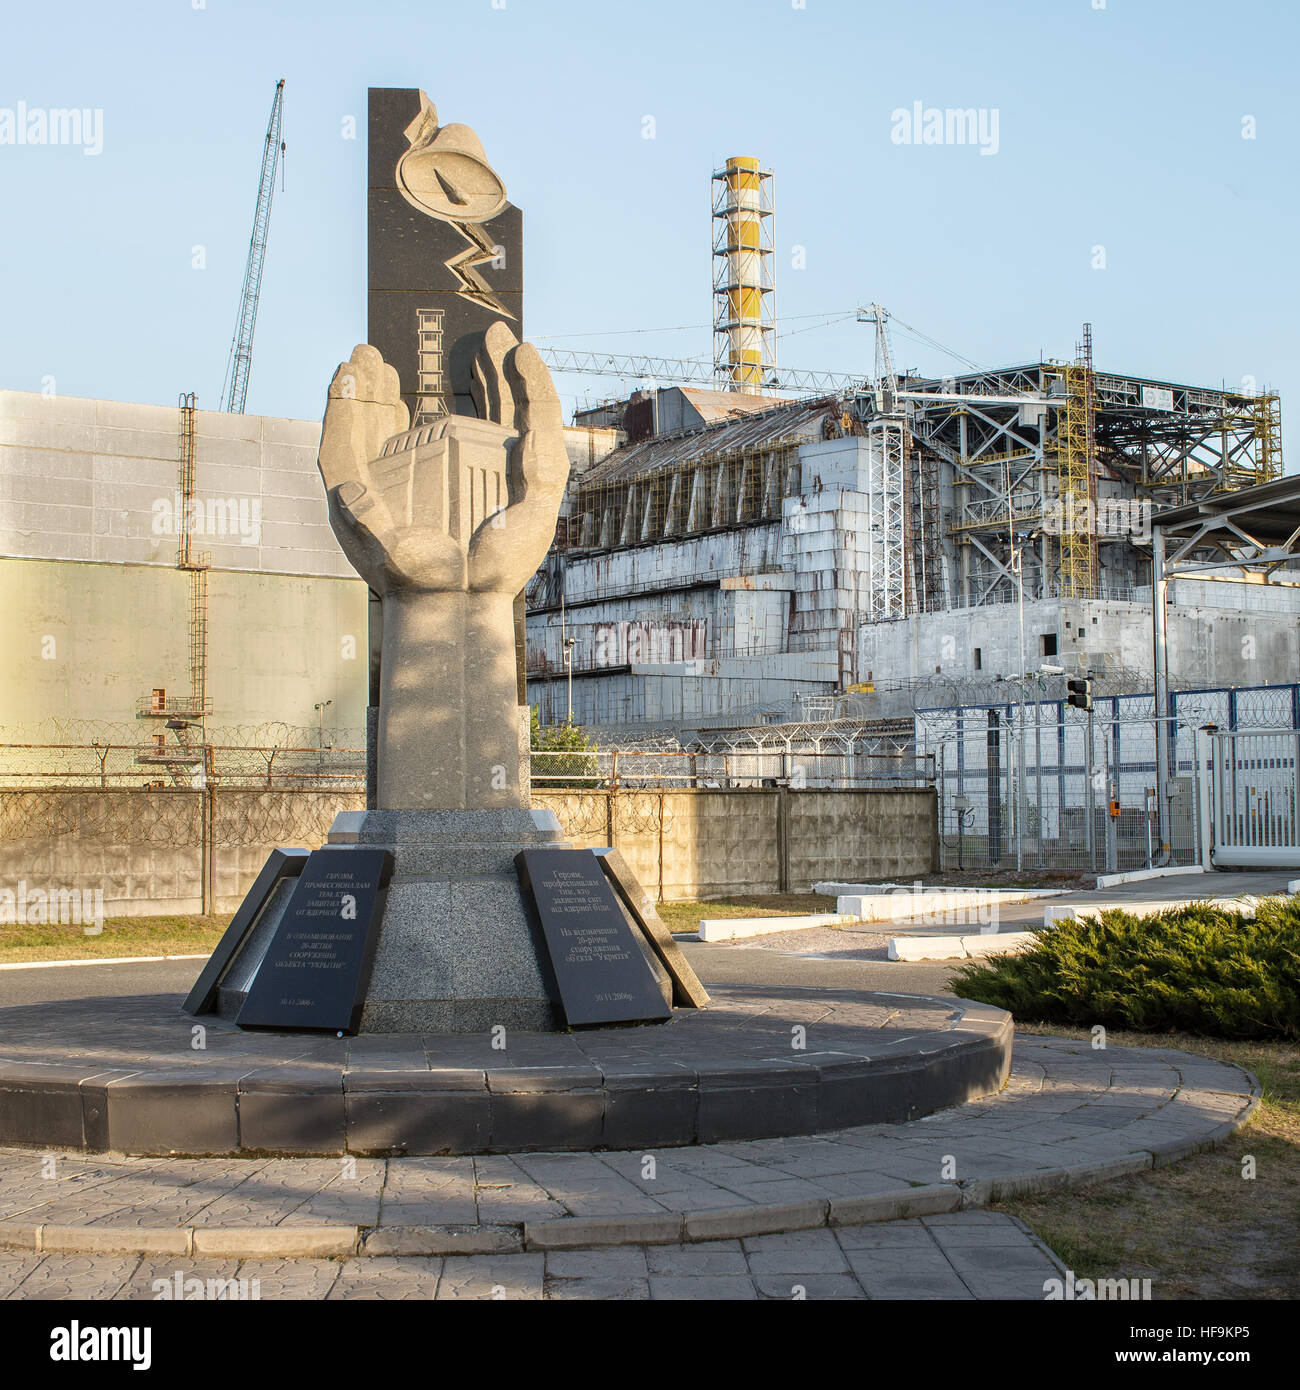 Chernobyl/Ukraine - 26.9/2016 Old sarcophagus reactor 4 in Chernobyl nuclear disaster area. - Stock Image